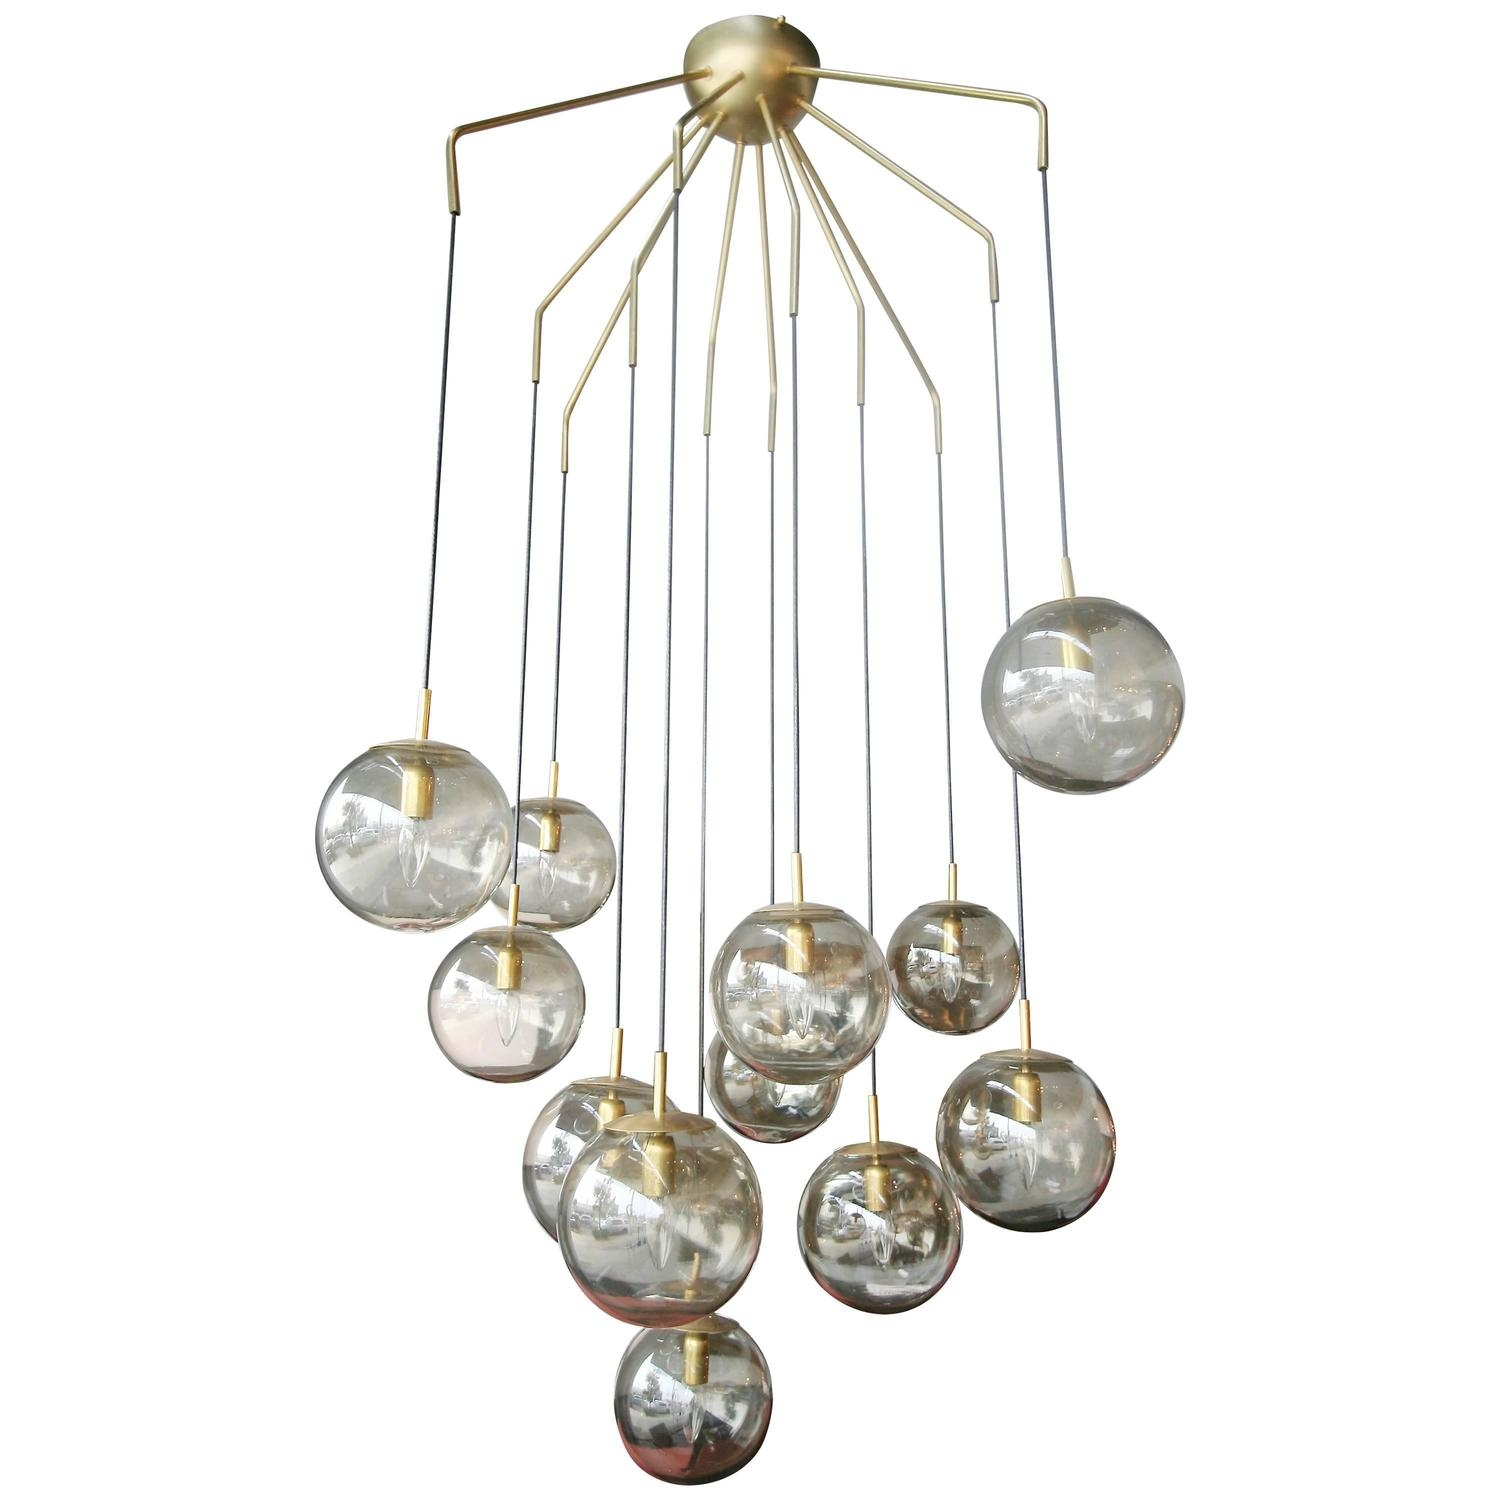 12 Ball Smoked Glass Murano Chandelier Lampadario Moderno In Smoked Glass Chandelier (Image 1 of 15)